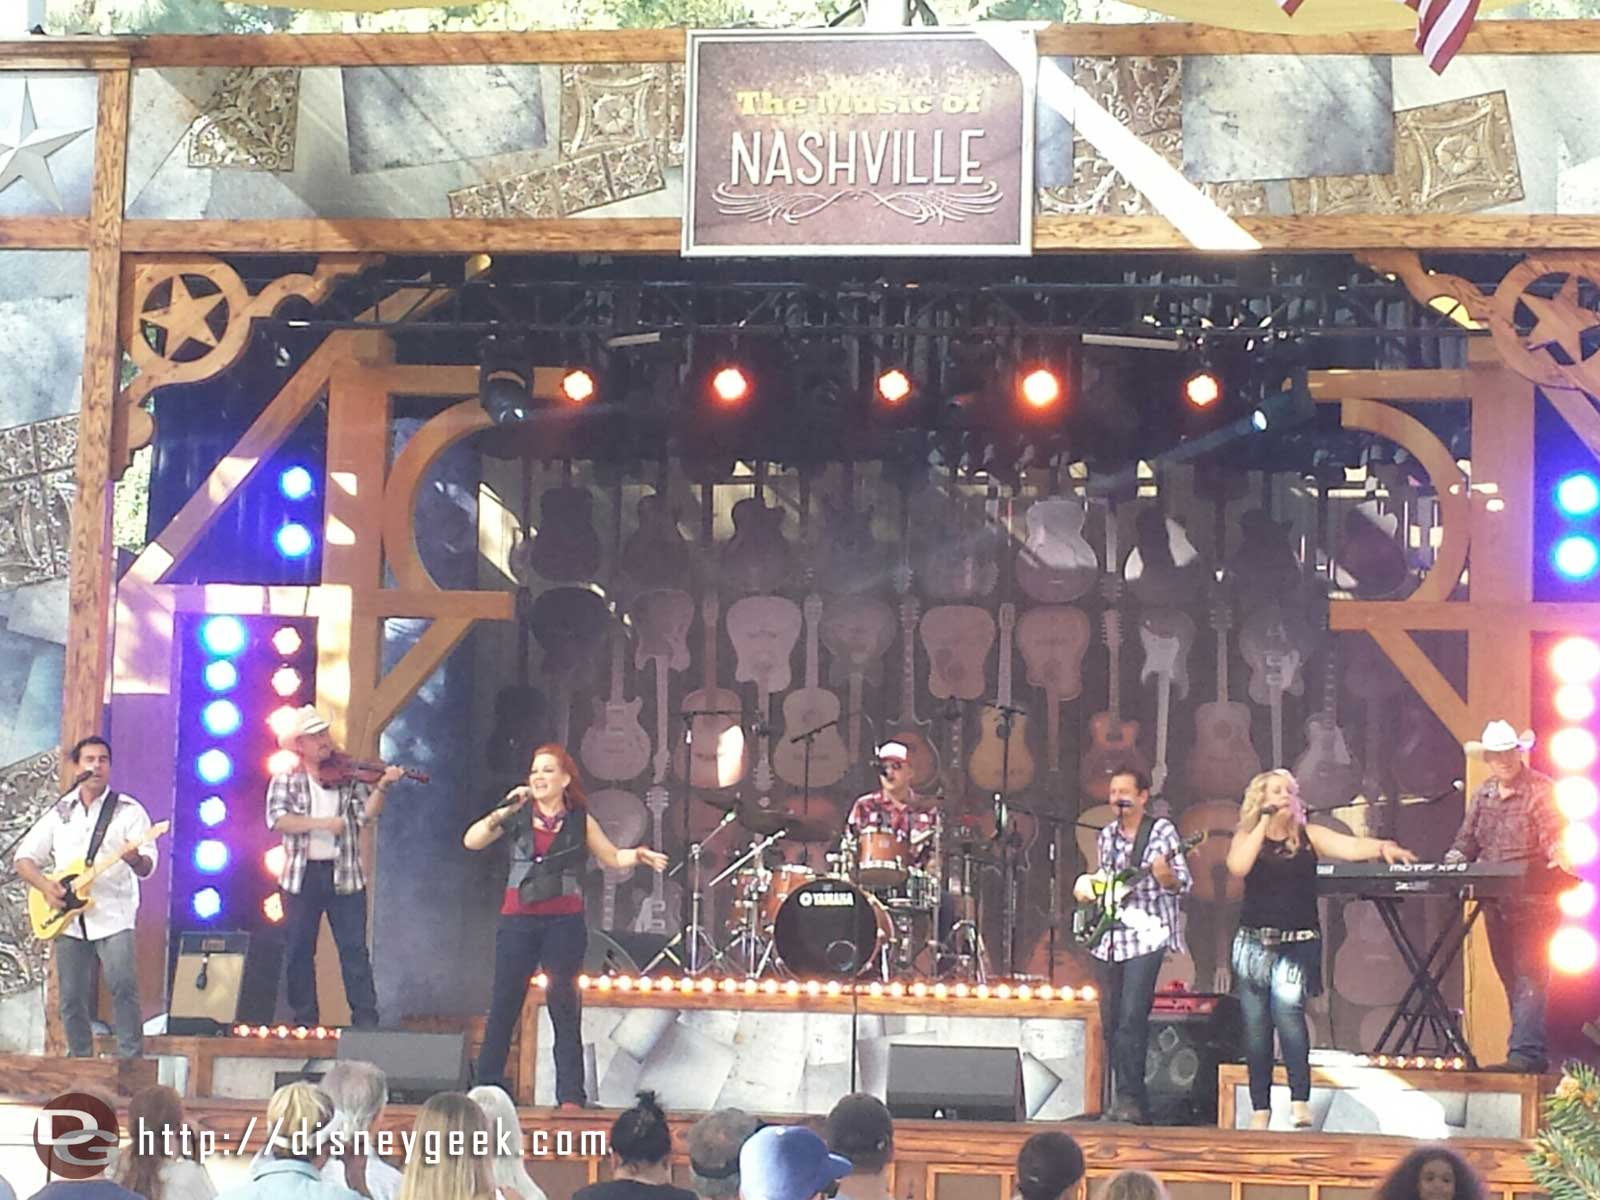 Smith & Wilkes performing the Music of Nashville  at the Big Thunder Ranch Jamboree #Disneyland